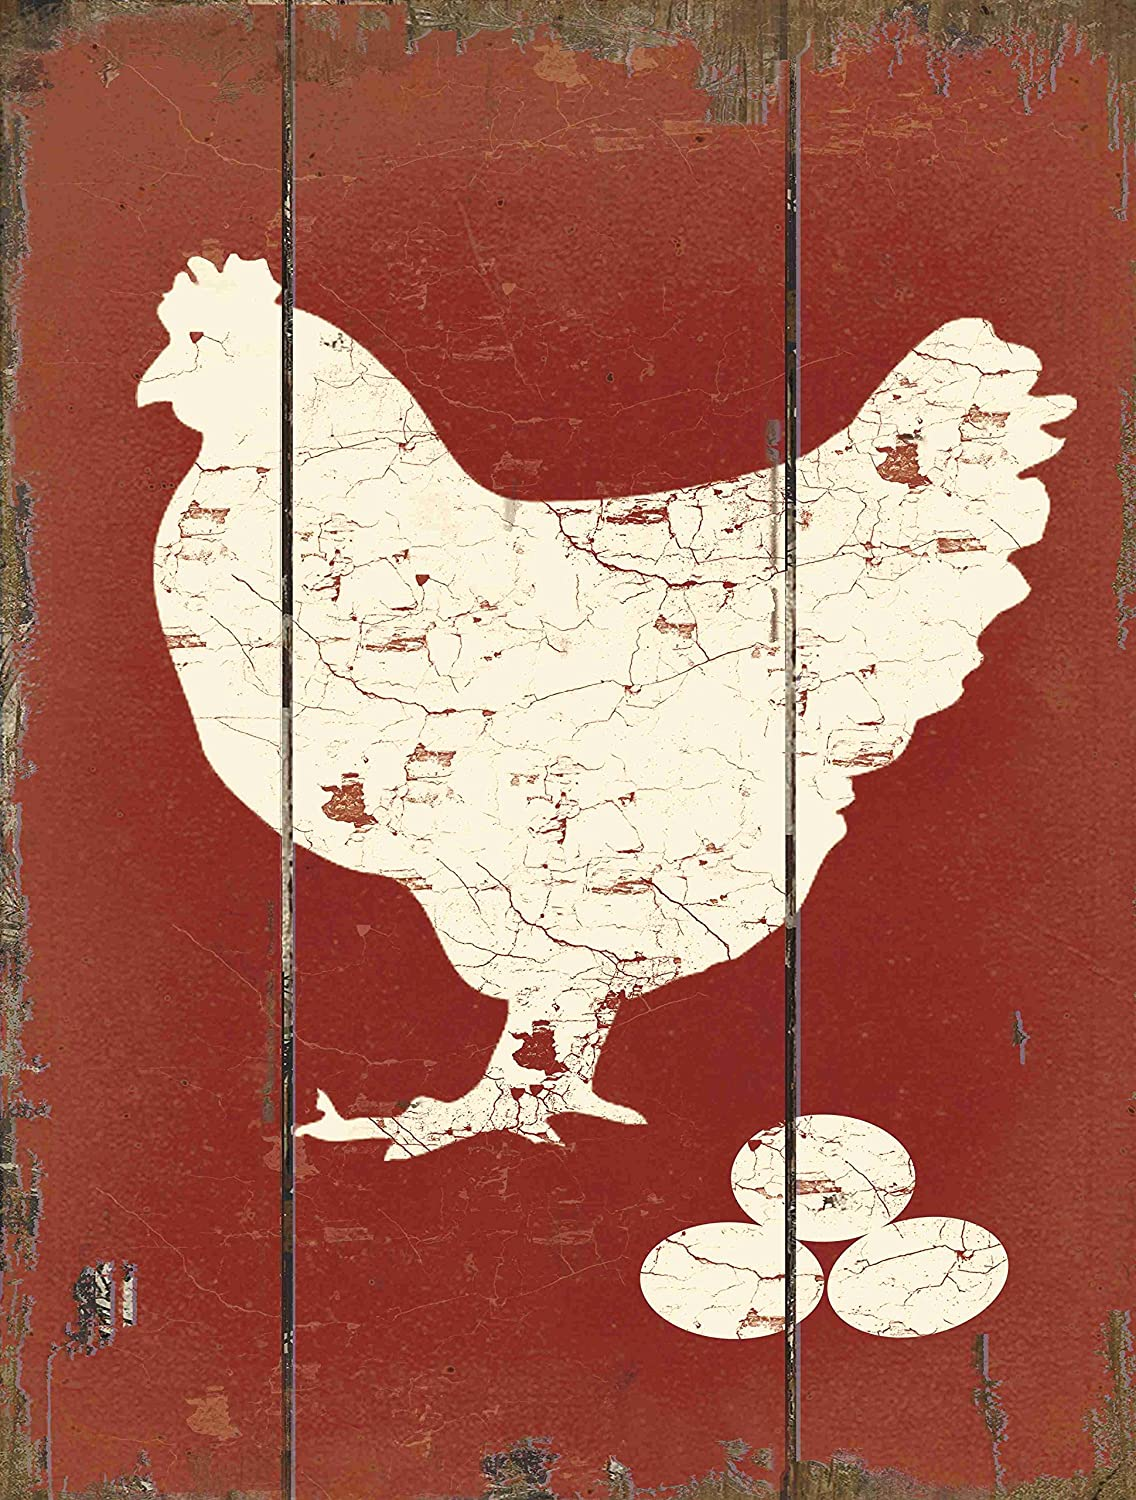 "Barnyard Designs White Hen Laying Fresh Eggs Retro Vintage Wood Plaque Bar Sign Country Home Decor 15.75"" x 11.75"""